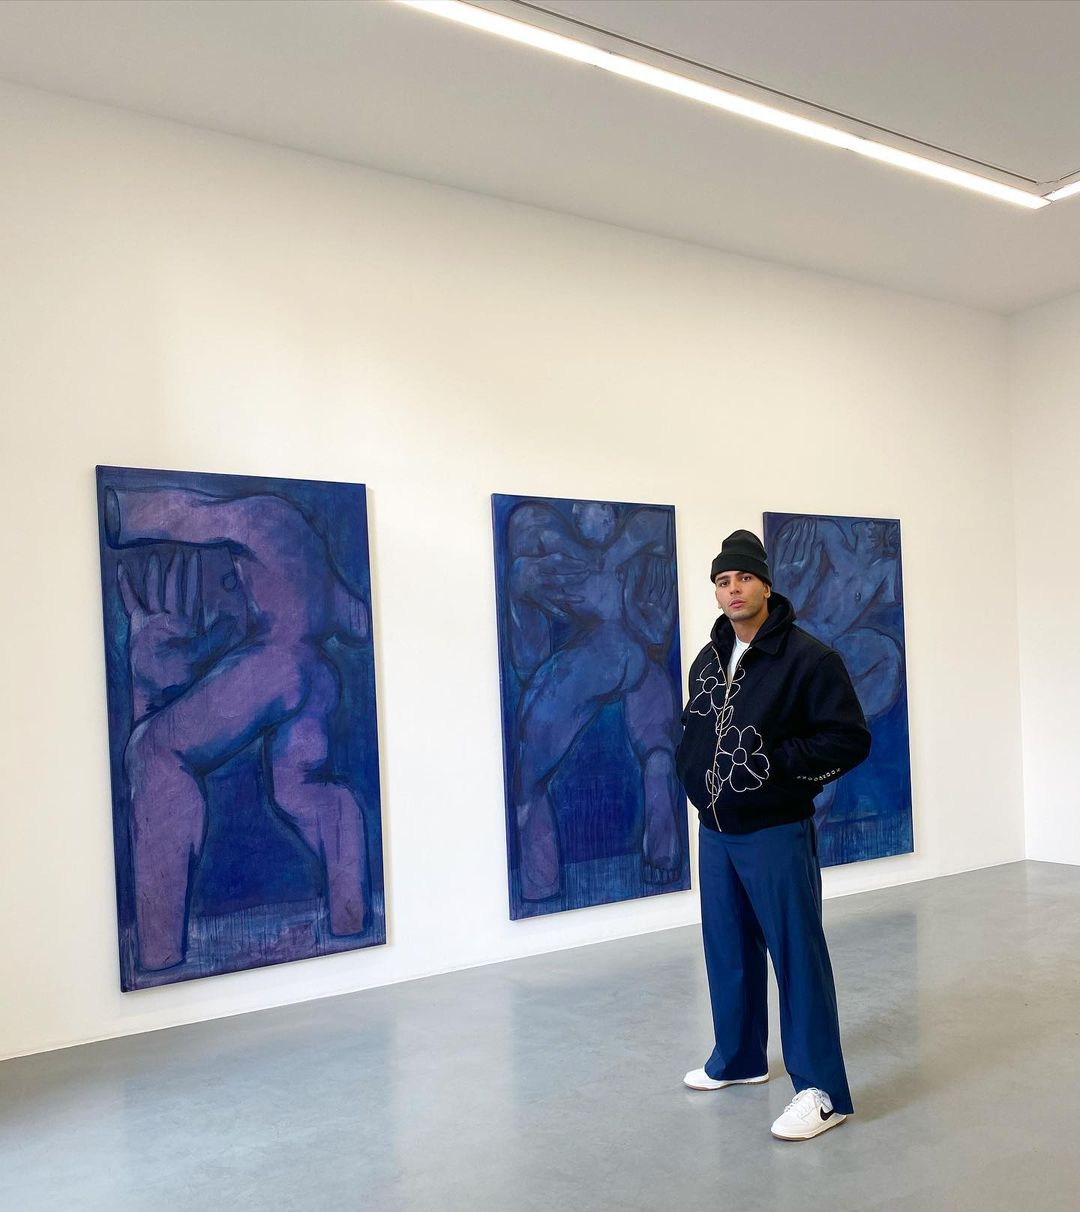 SPOTTED: Younes Bendjima Explores an Art Gallery in Colour Co-ordinated Outfit